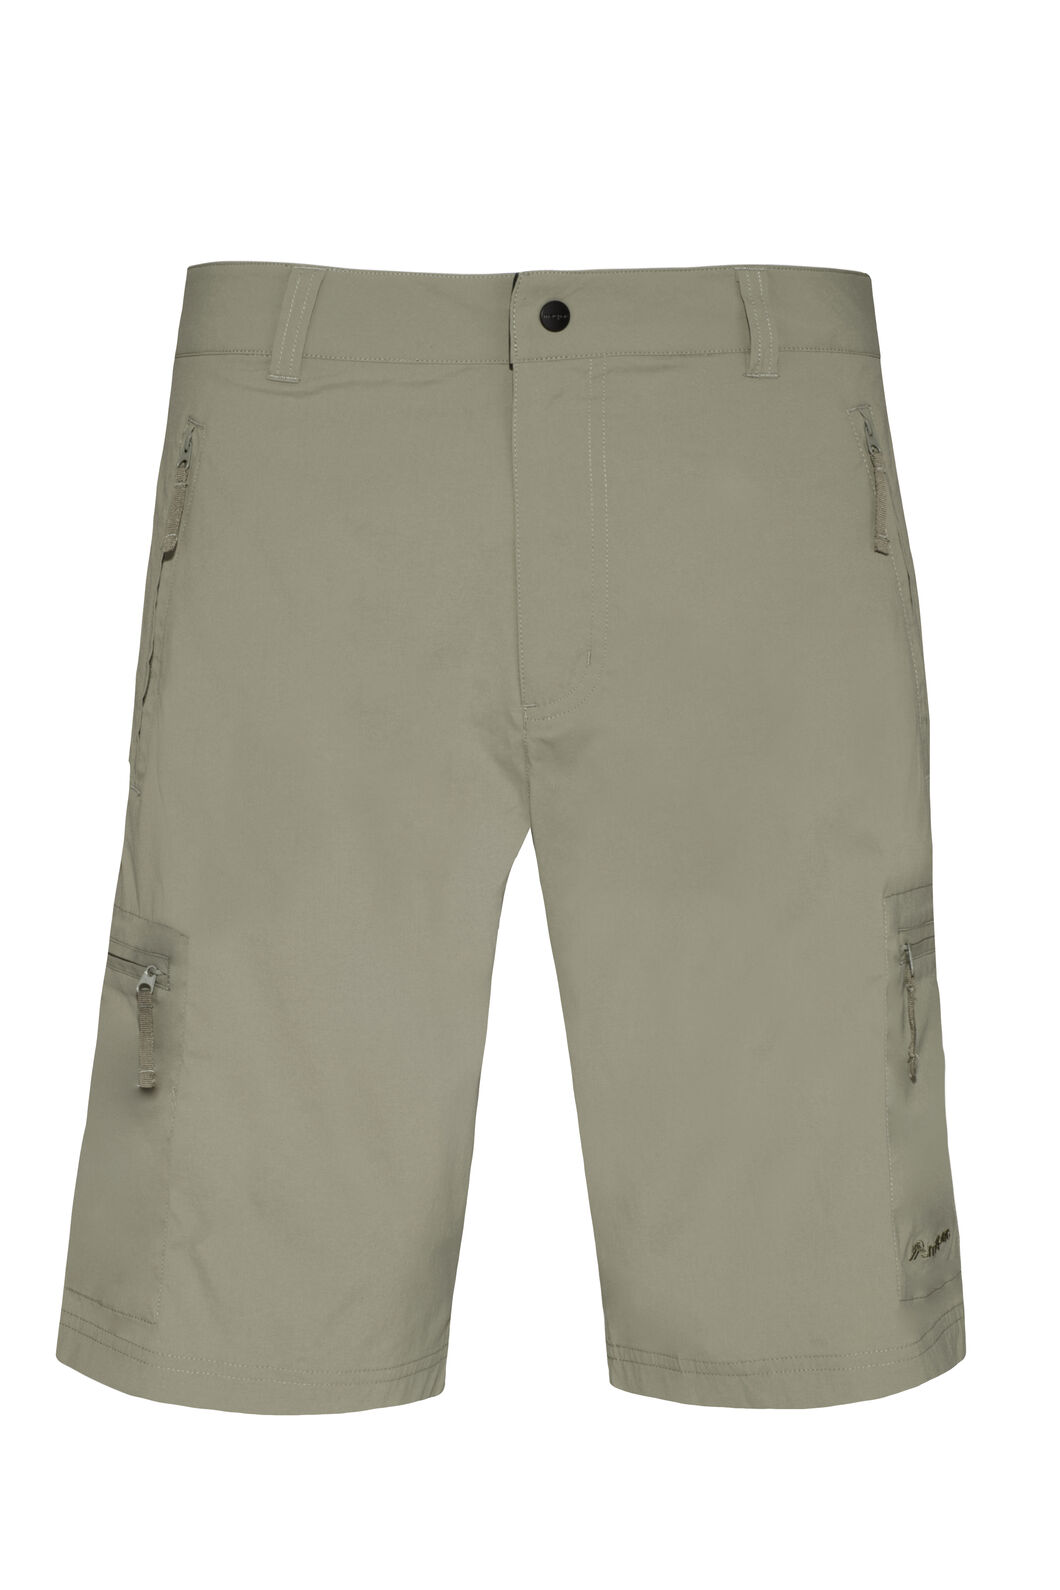 Macpac Drift Shorts — Men's, Vetiver, hi-res